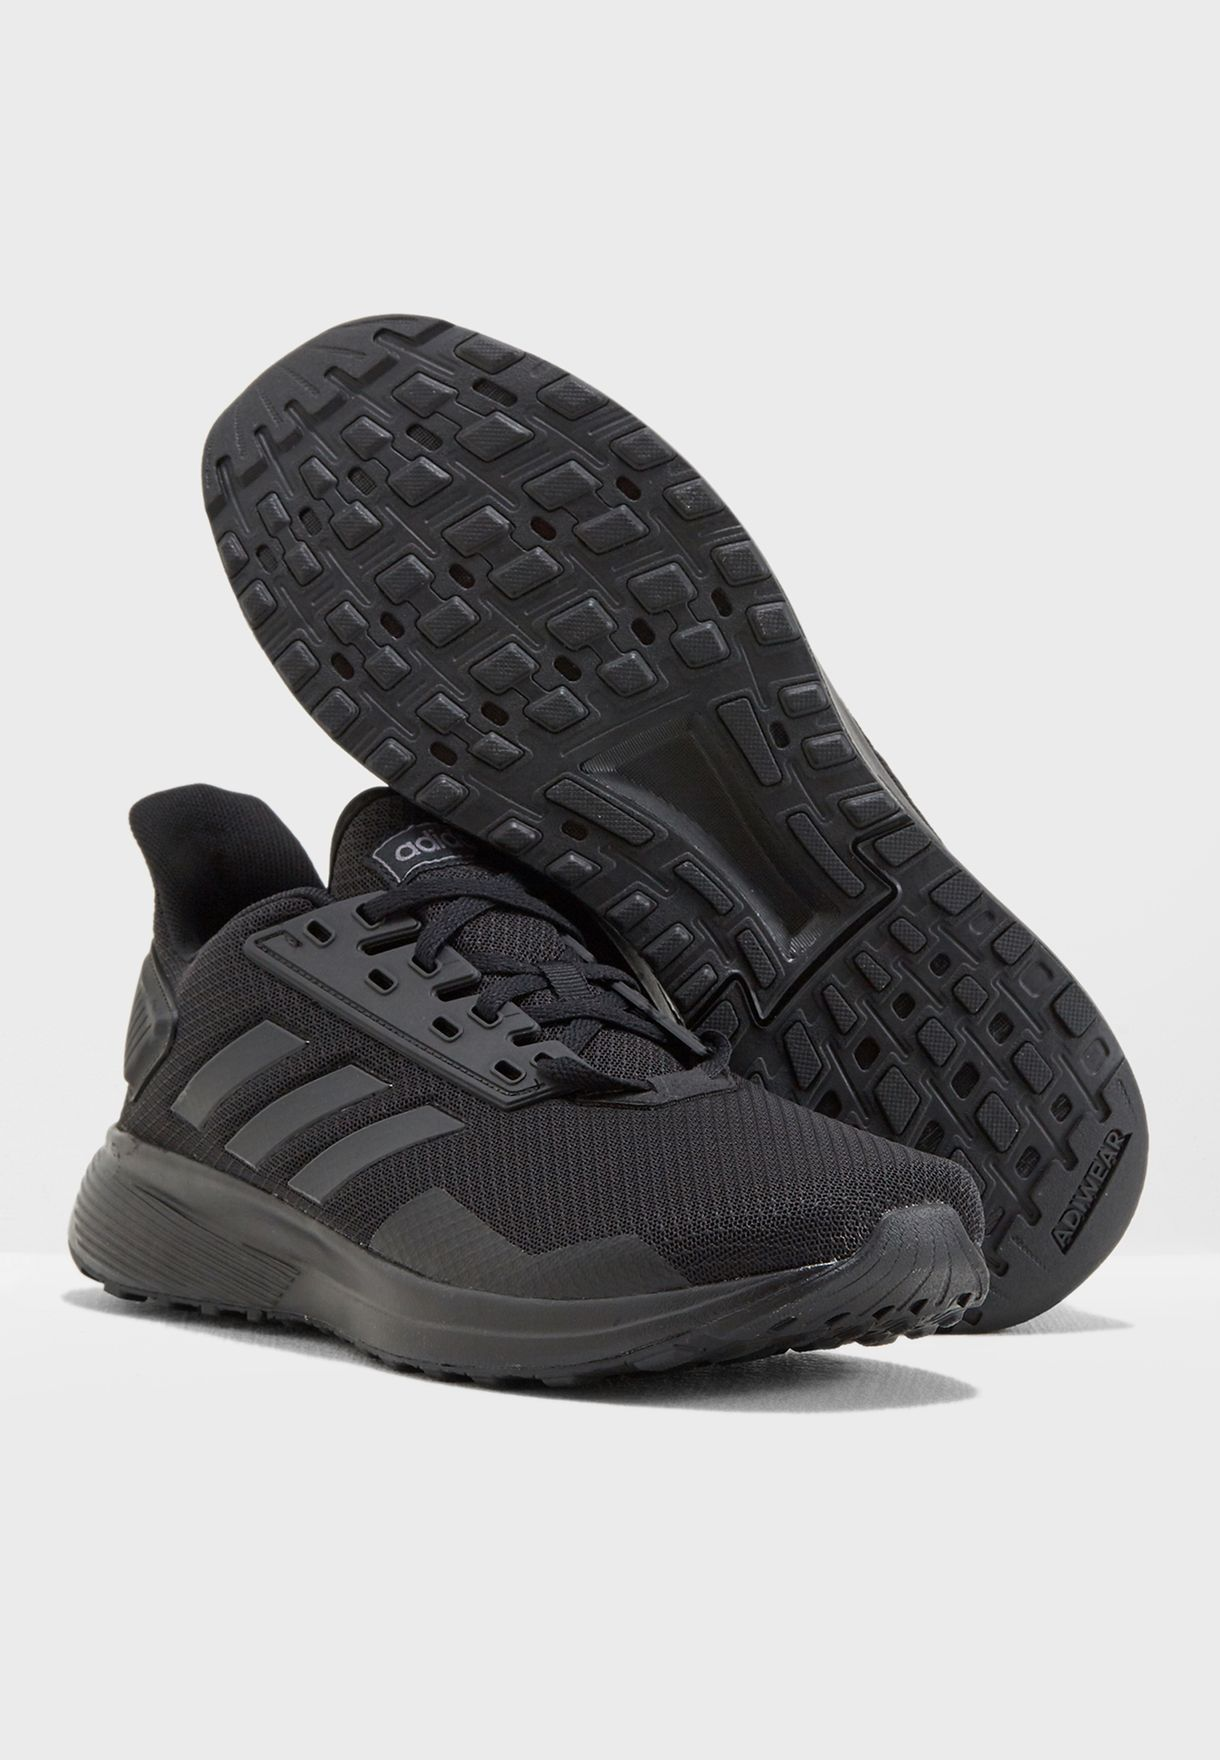 2dec9a6ae3 Adidas Chaussures sportif Sneakers Shoes Sport Running Duramo 9 m ...